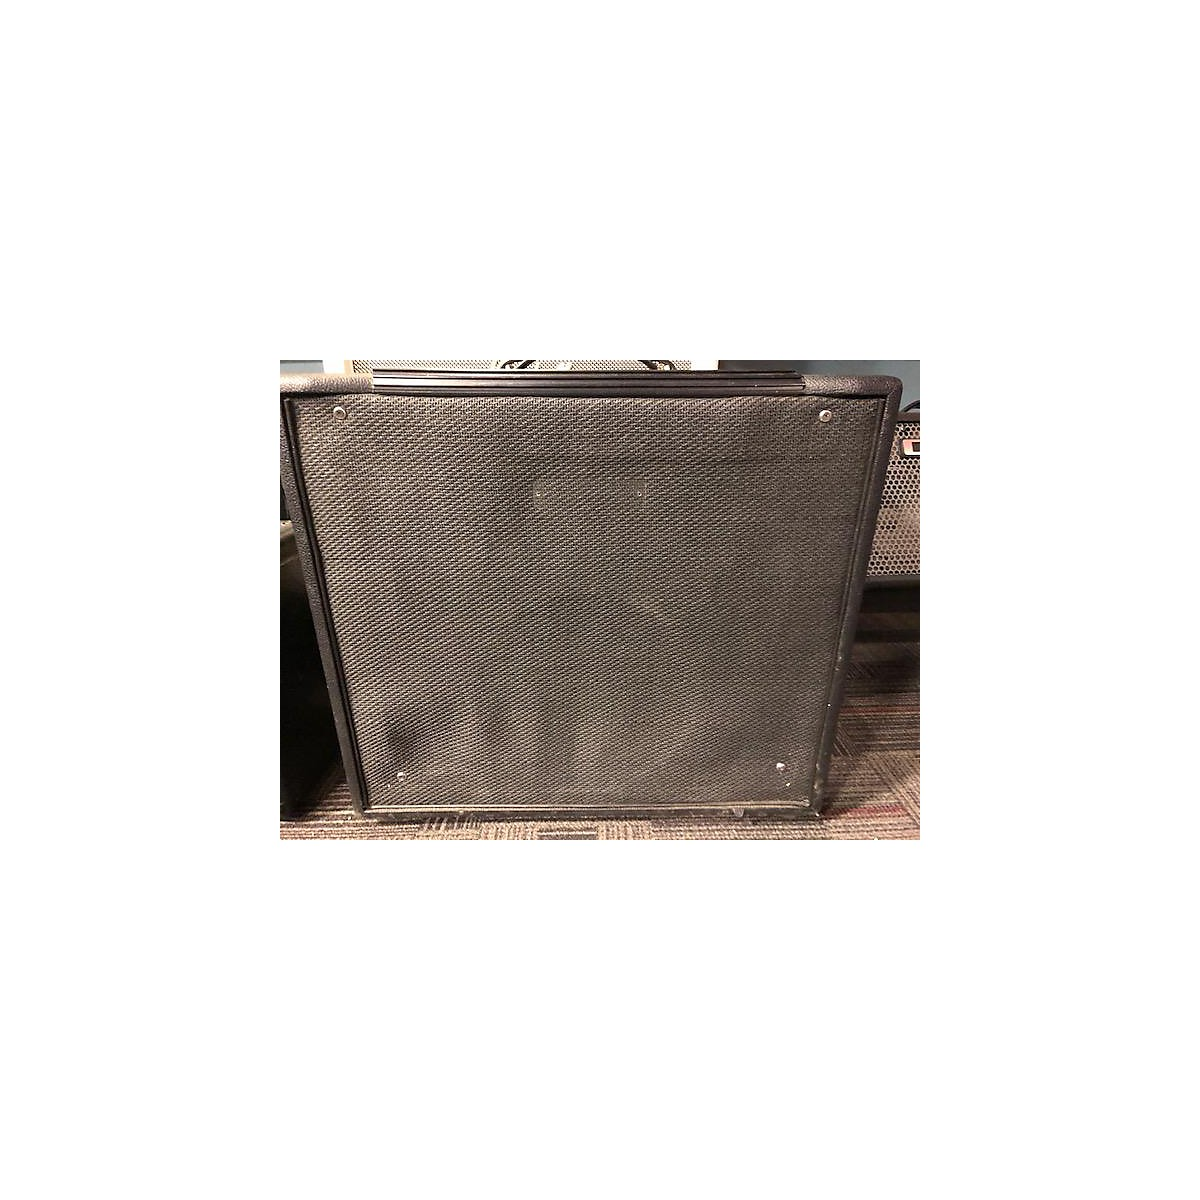 Miscellaneous 1X12 Guitar Cabinet